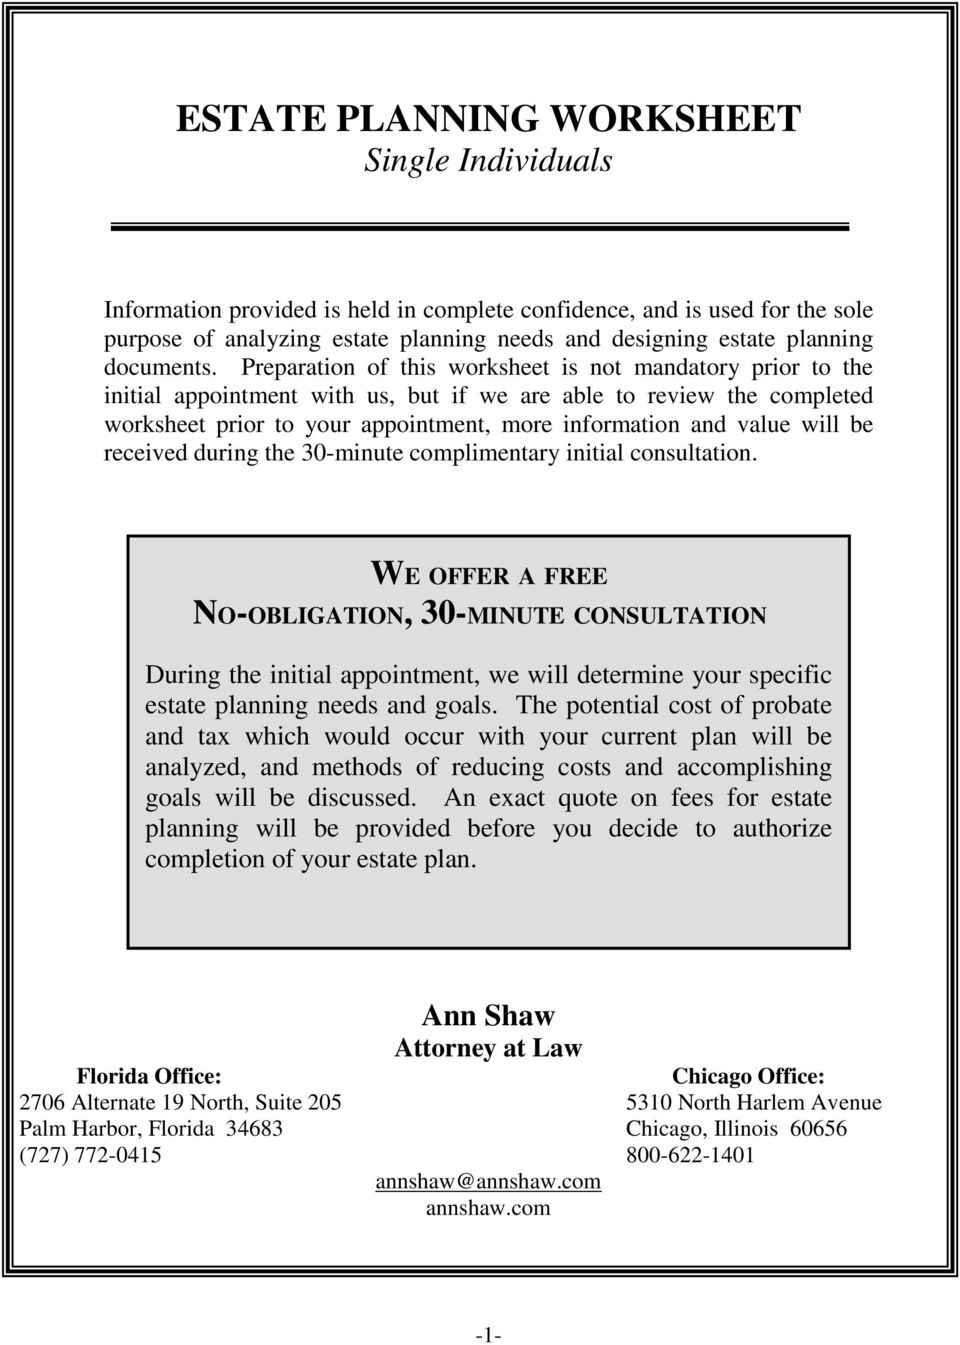 Worksheets Estate Planning Worksheet estate planning worksheet single individuals pdf preparation of this is not mandatory prior to the initial appointment with us but 2 planning